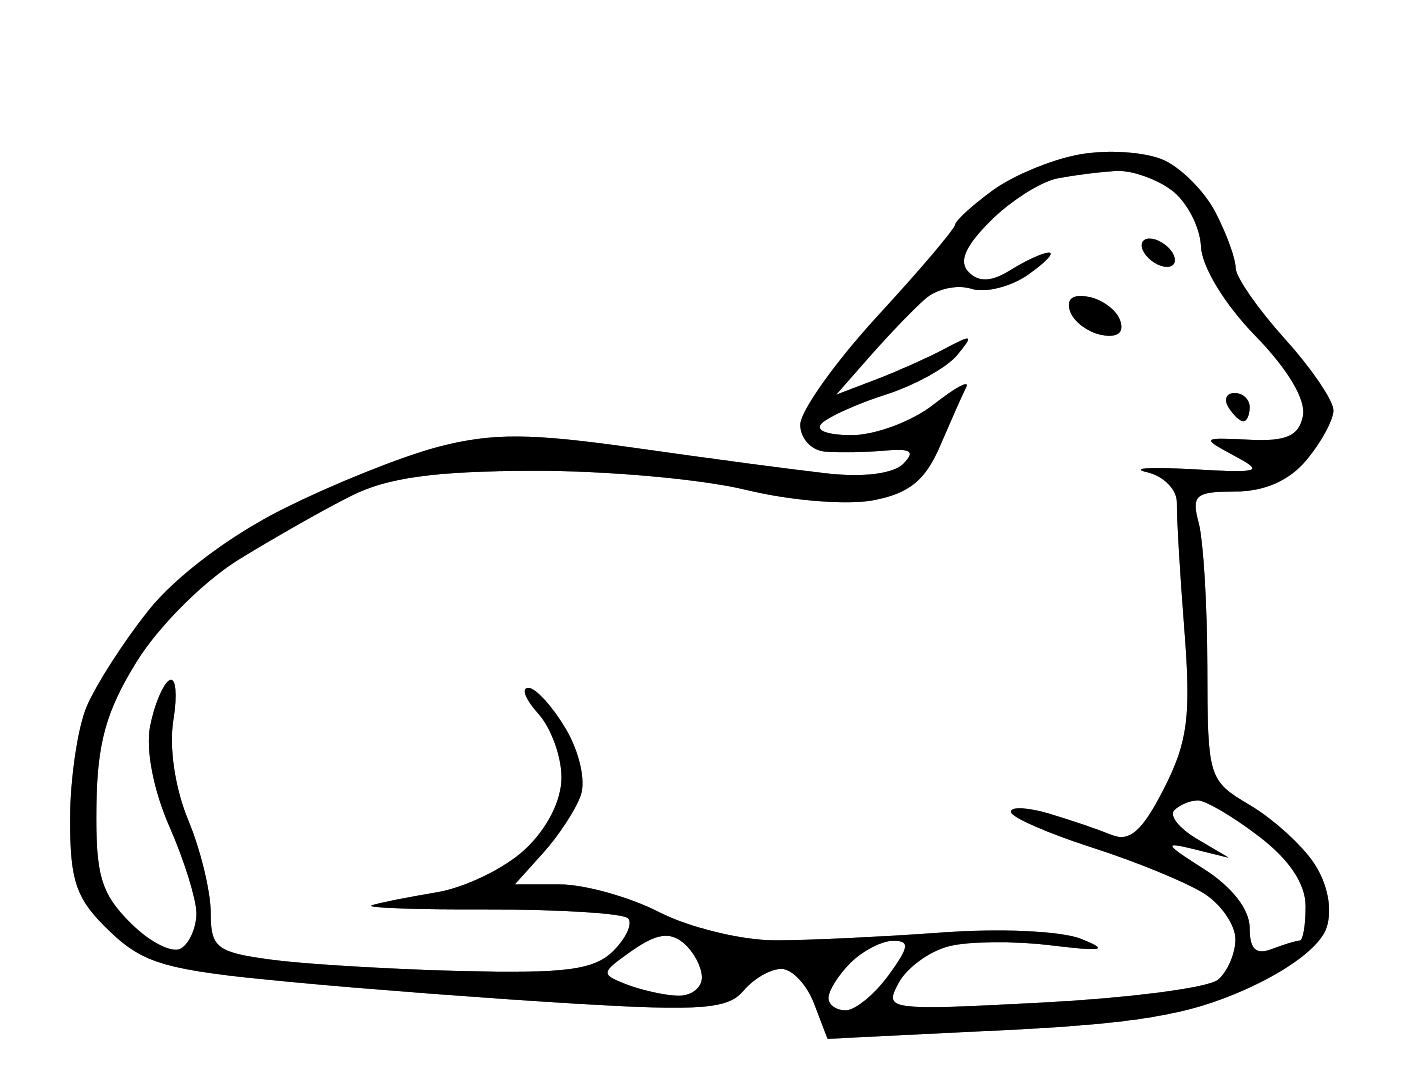 Black and white church young sheep clipart clip art library Free download Passover Lamb Black And White Clipart for your ... clip art library